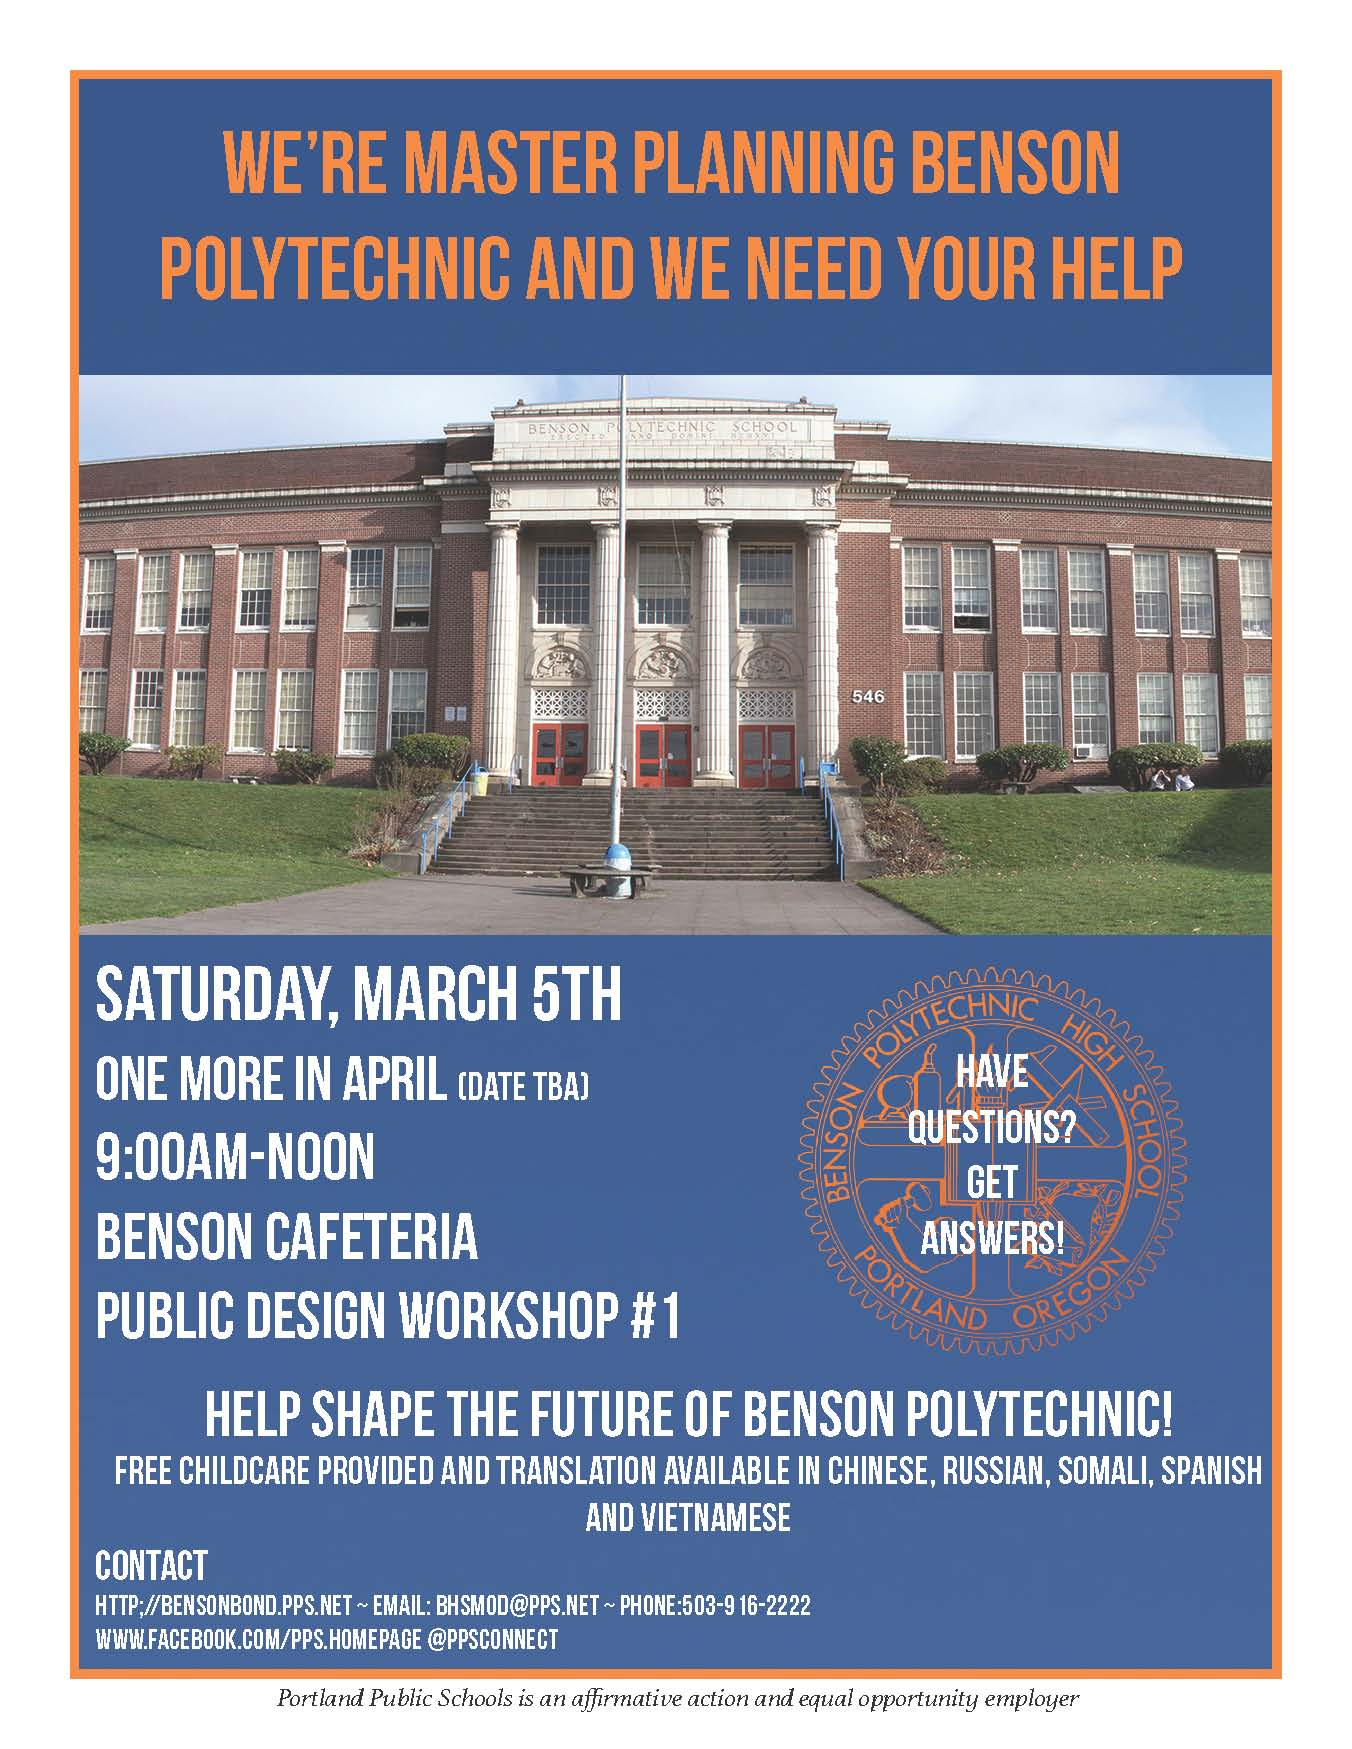 Benson Master Planning Meeting Flyer